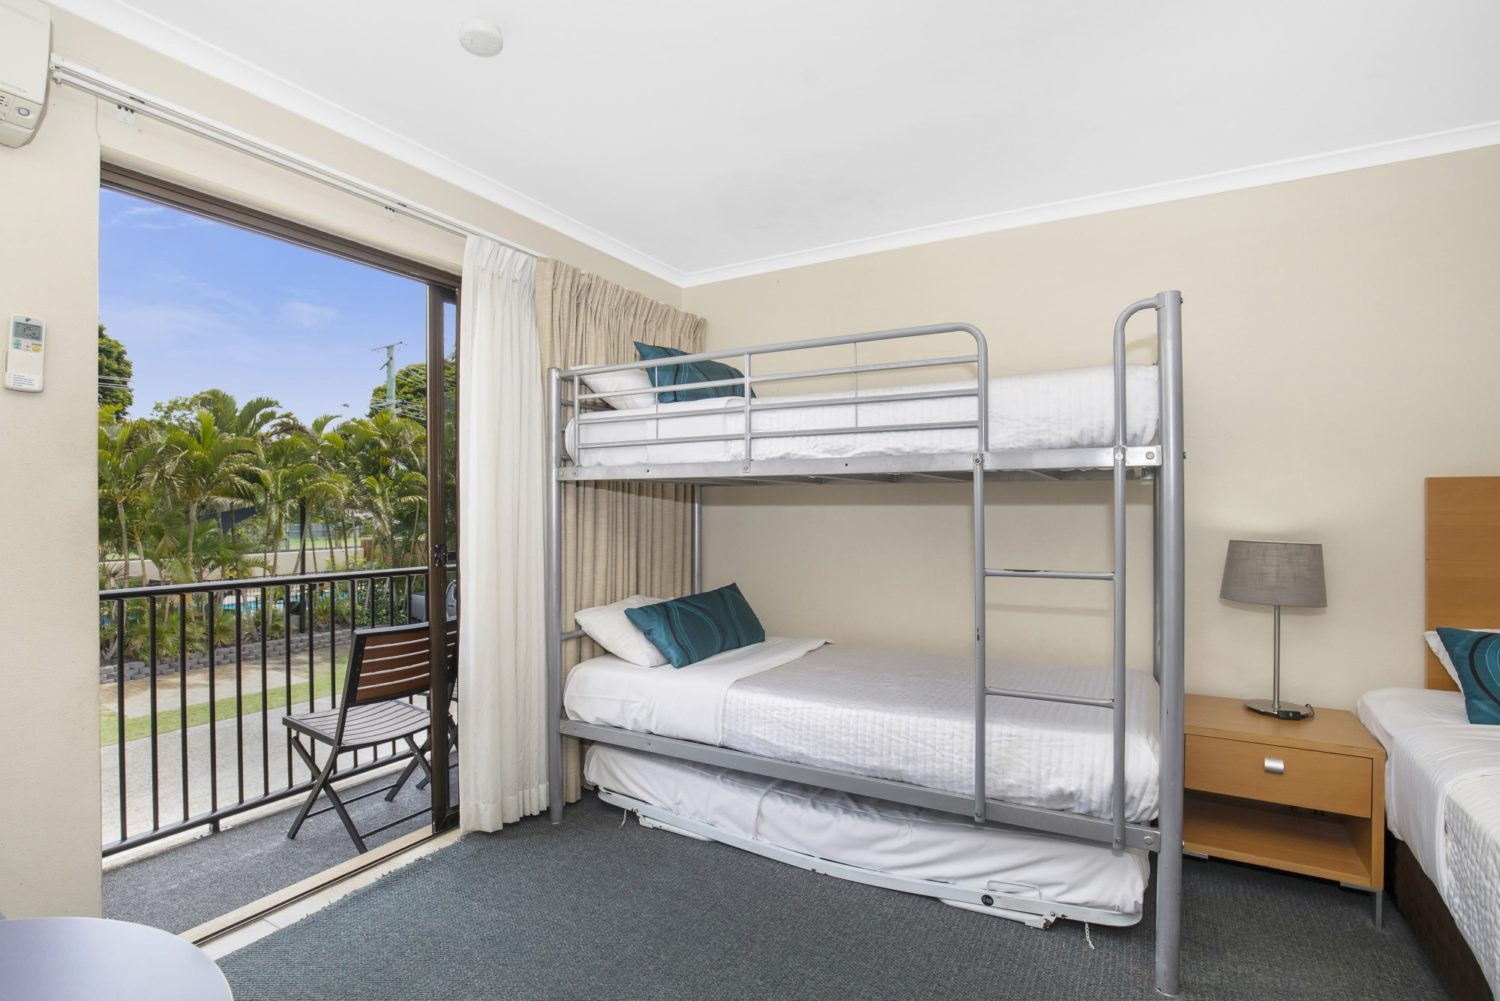 Brisbane-Airport-Motel-85 accommodation (1) (6)